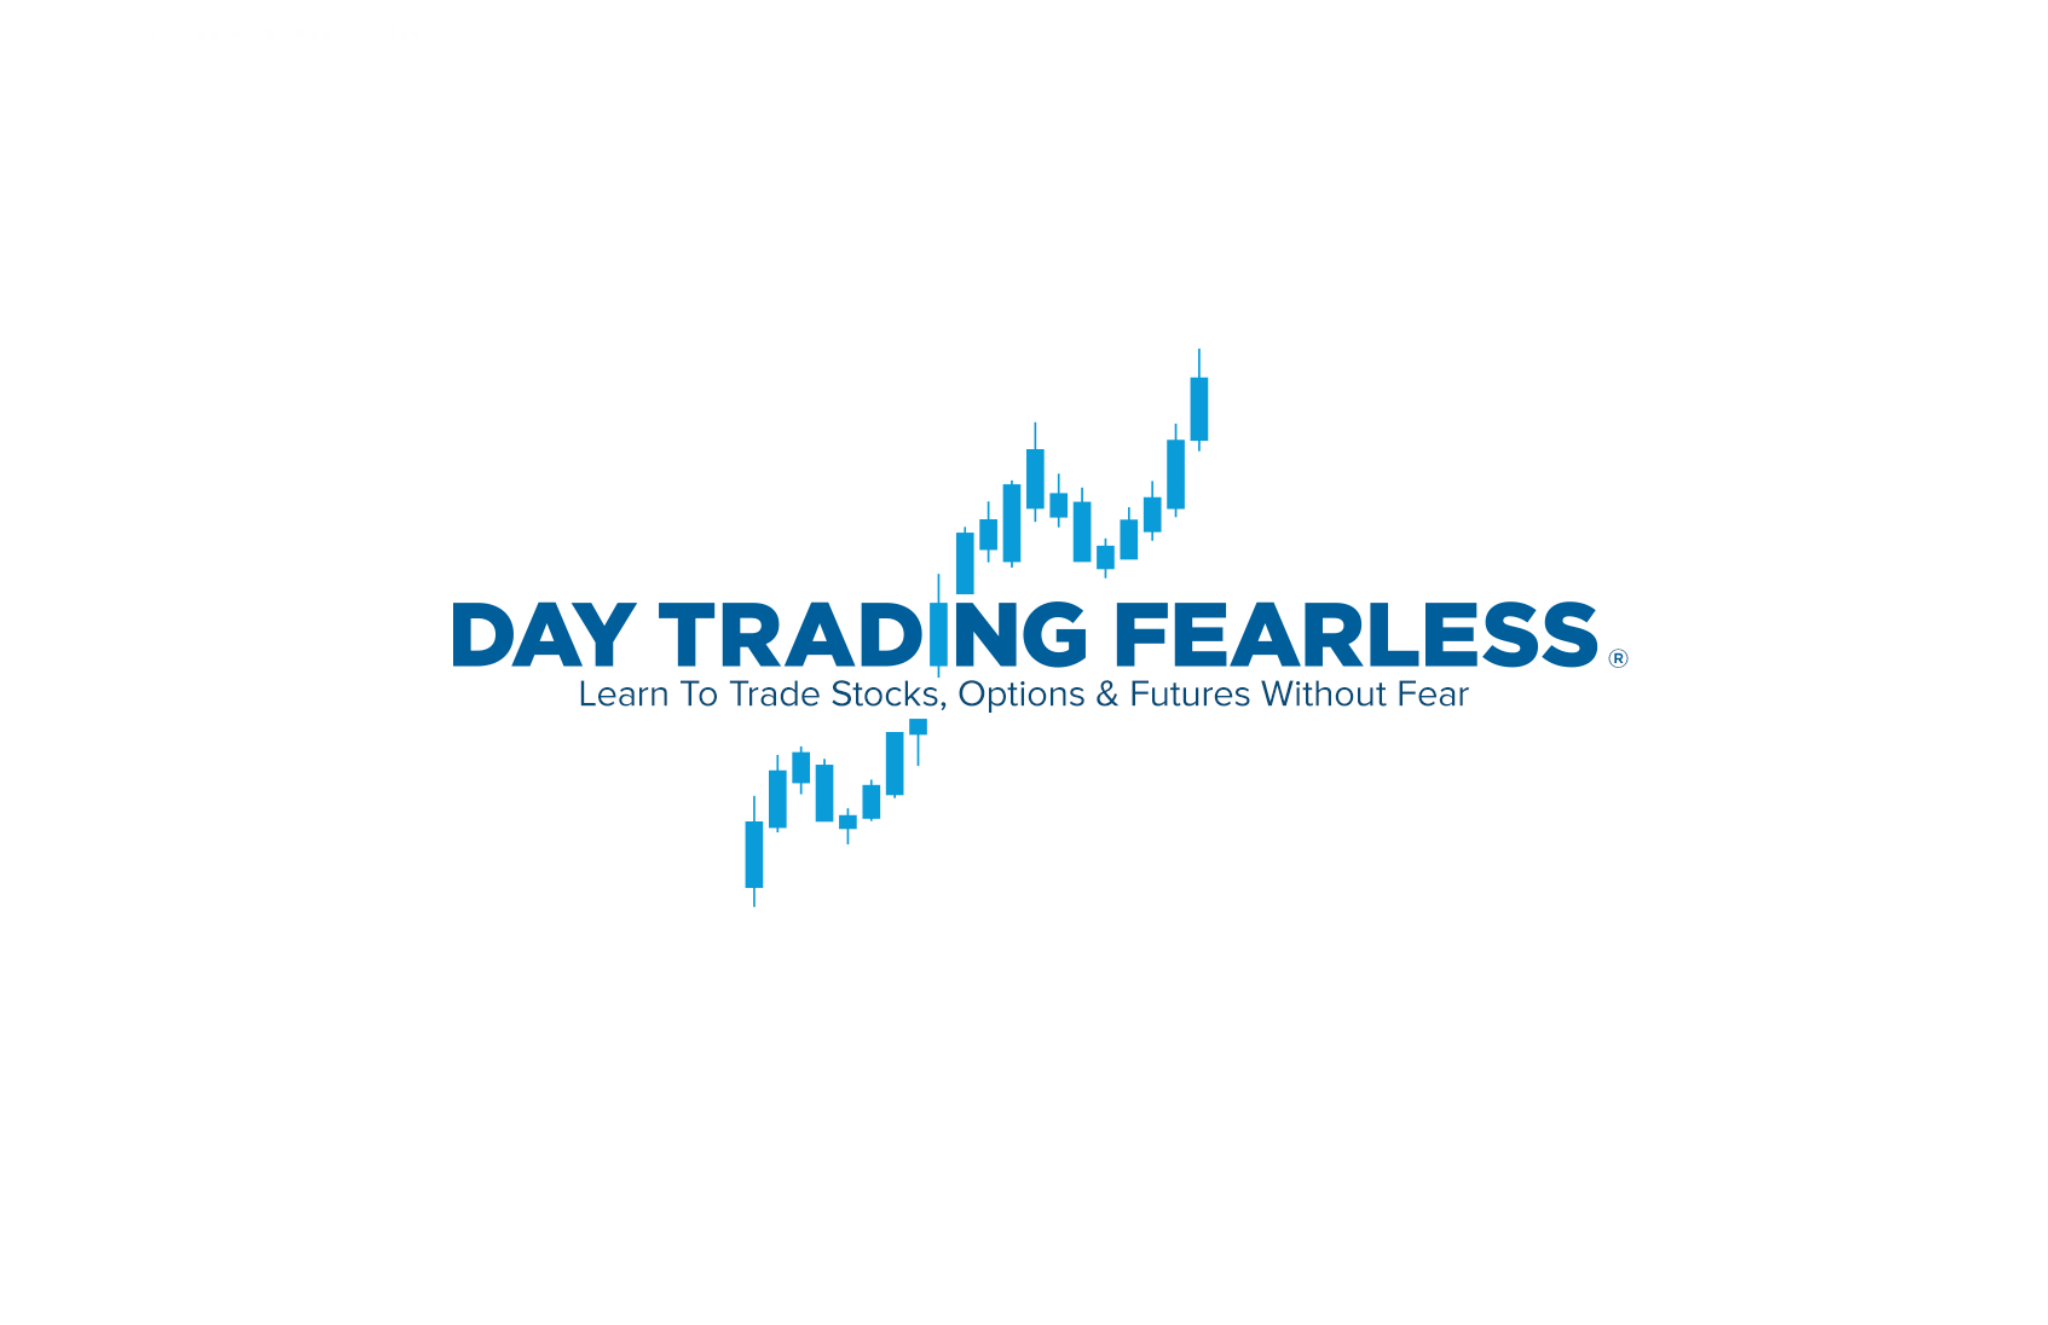 Videos - DayTradingFearless